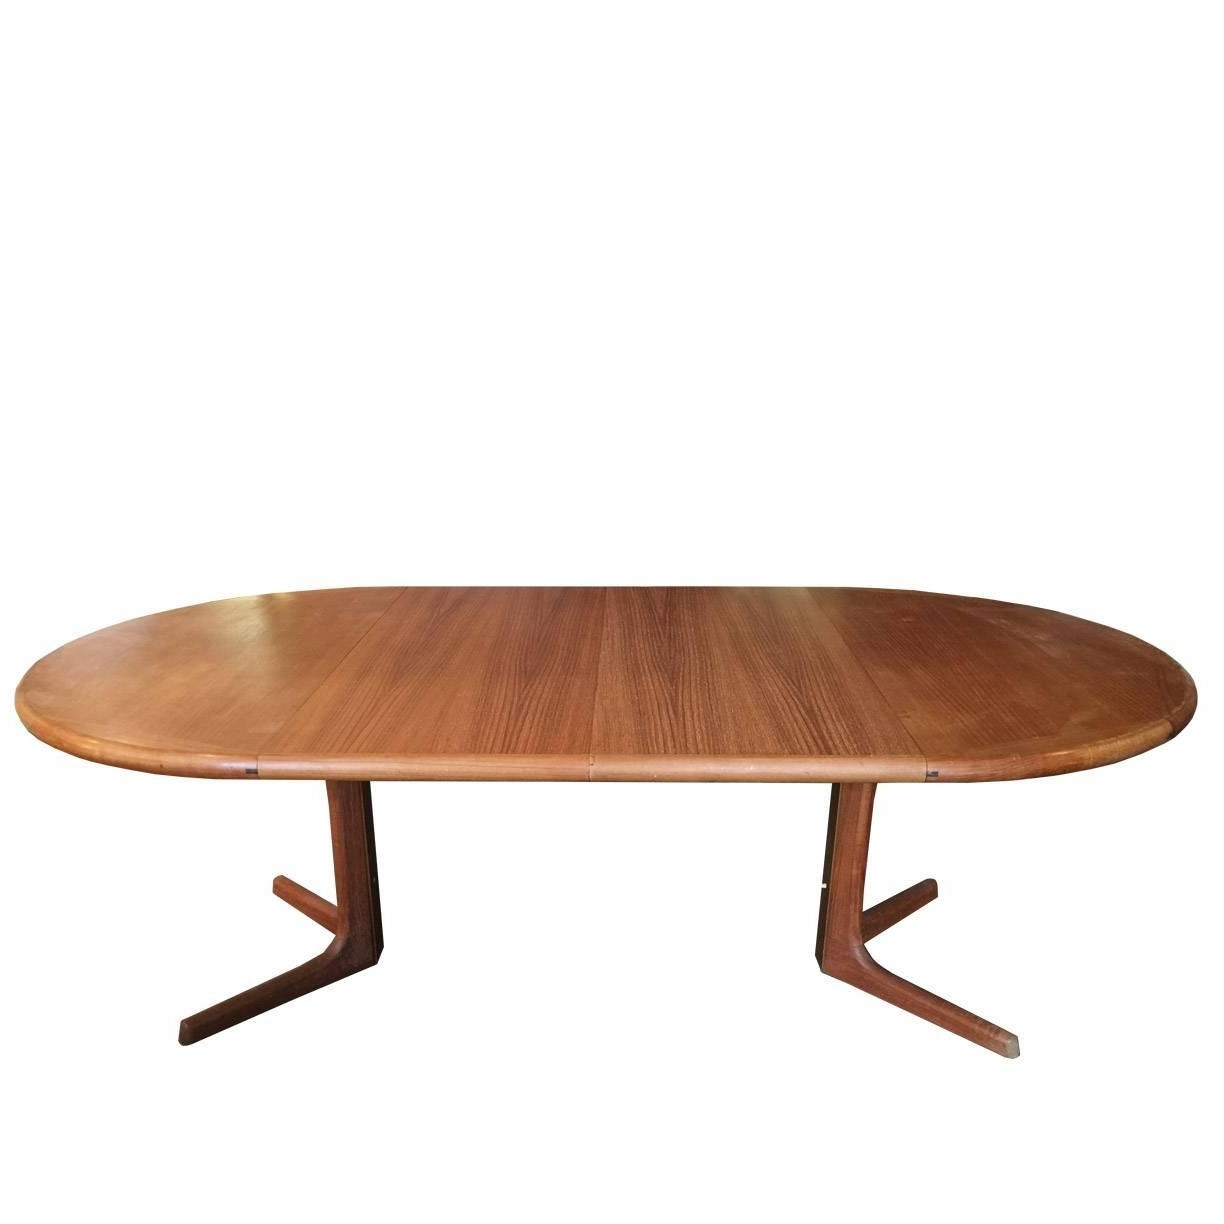 Well Liked Oval Danish Teak Dining Tabledrylund At 1Stdibs With Danish Dining Tables (View 6 of 25)